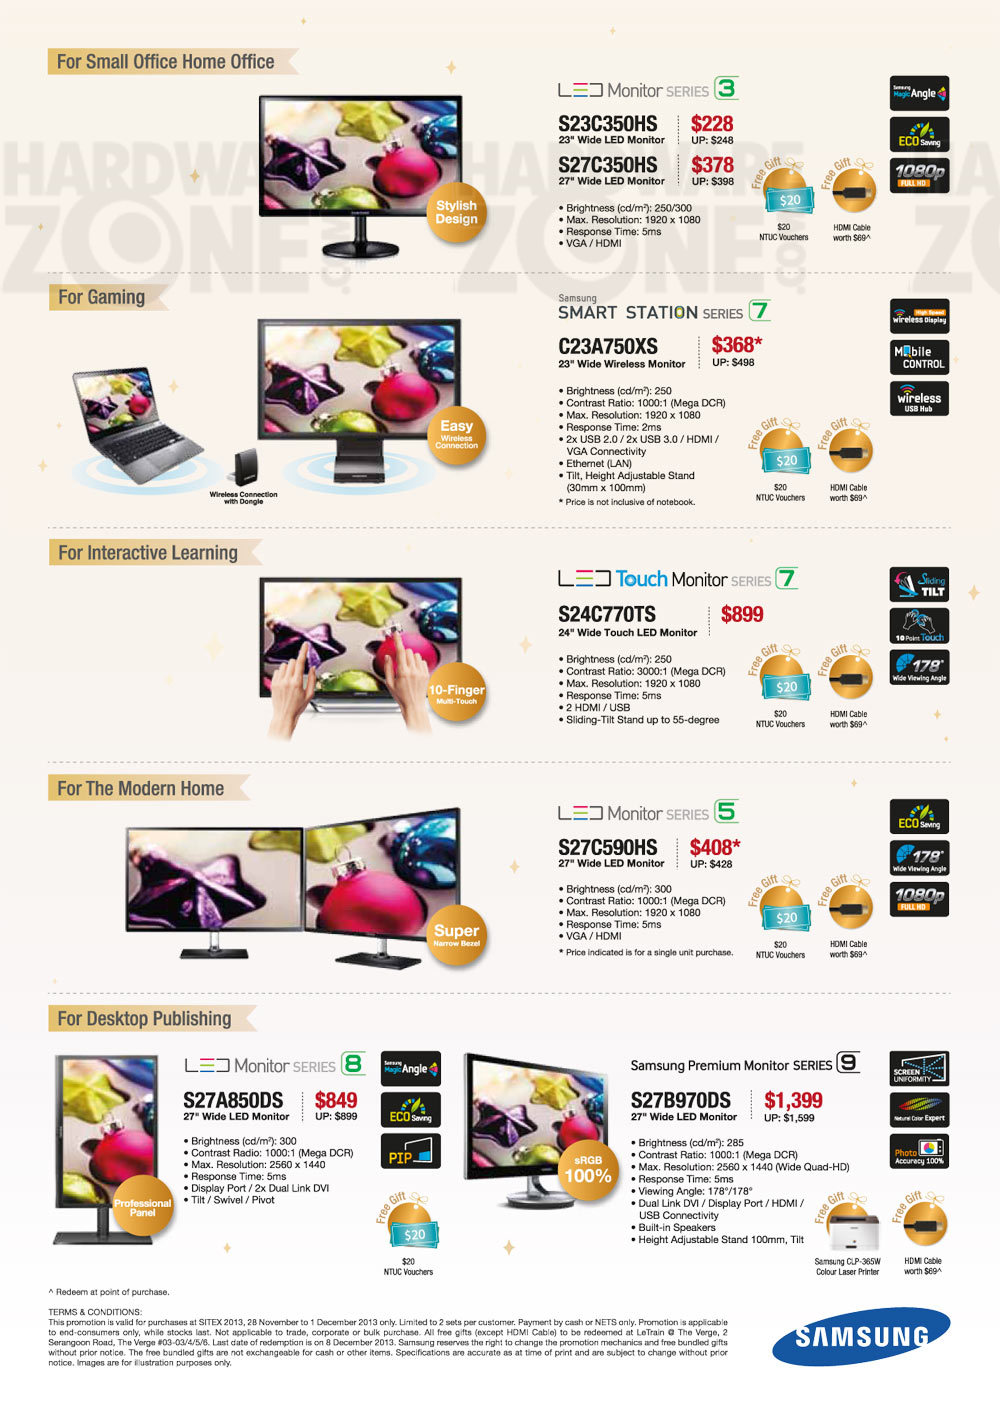 Samsung Monitors - page 2